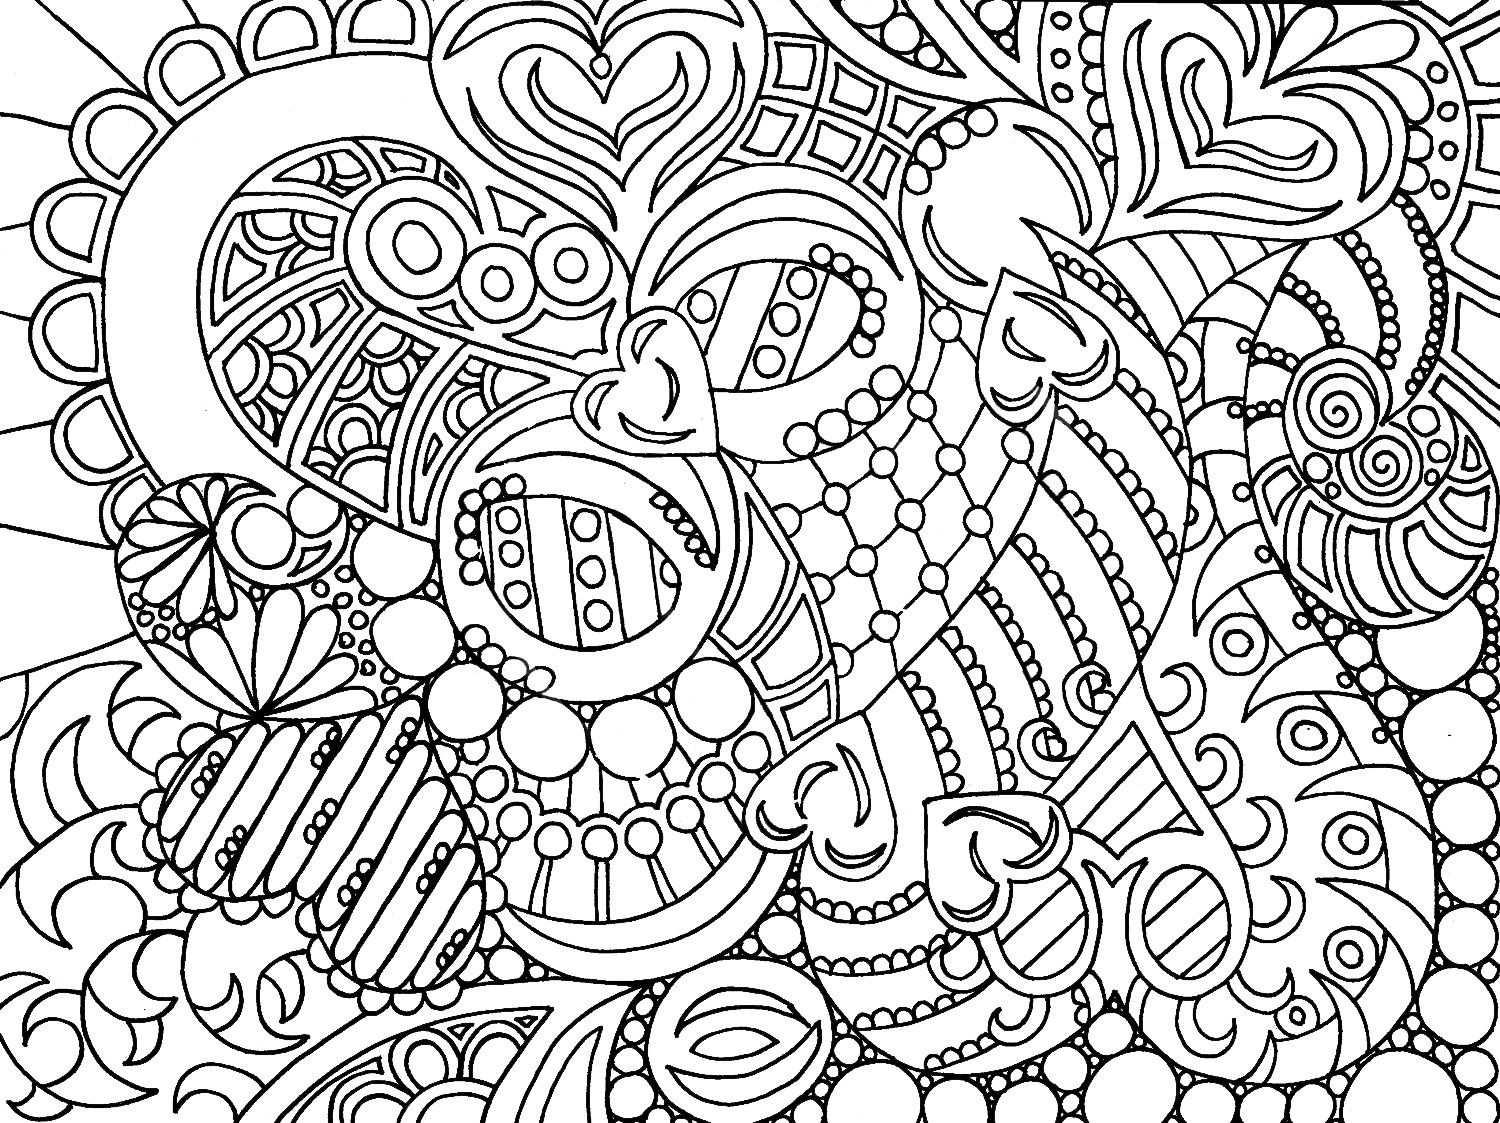 Printable Free Coloring Pages For Adults  free coloring pages for adults